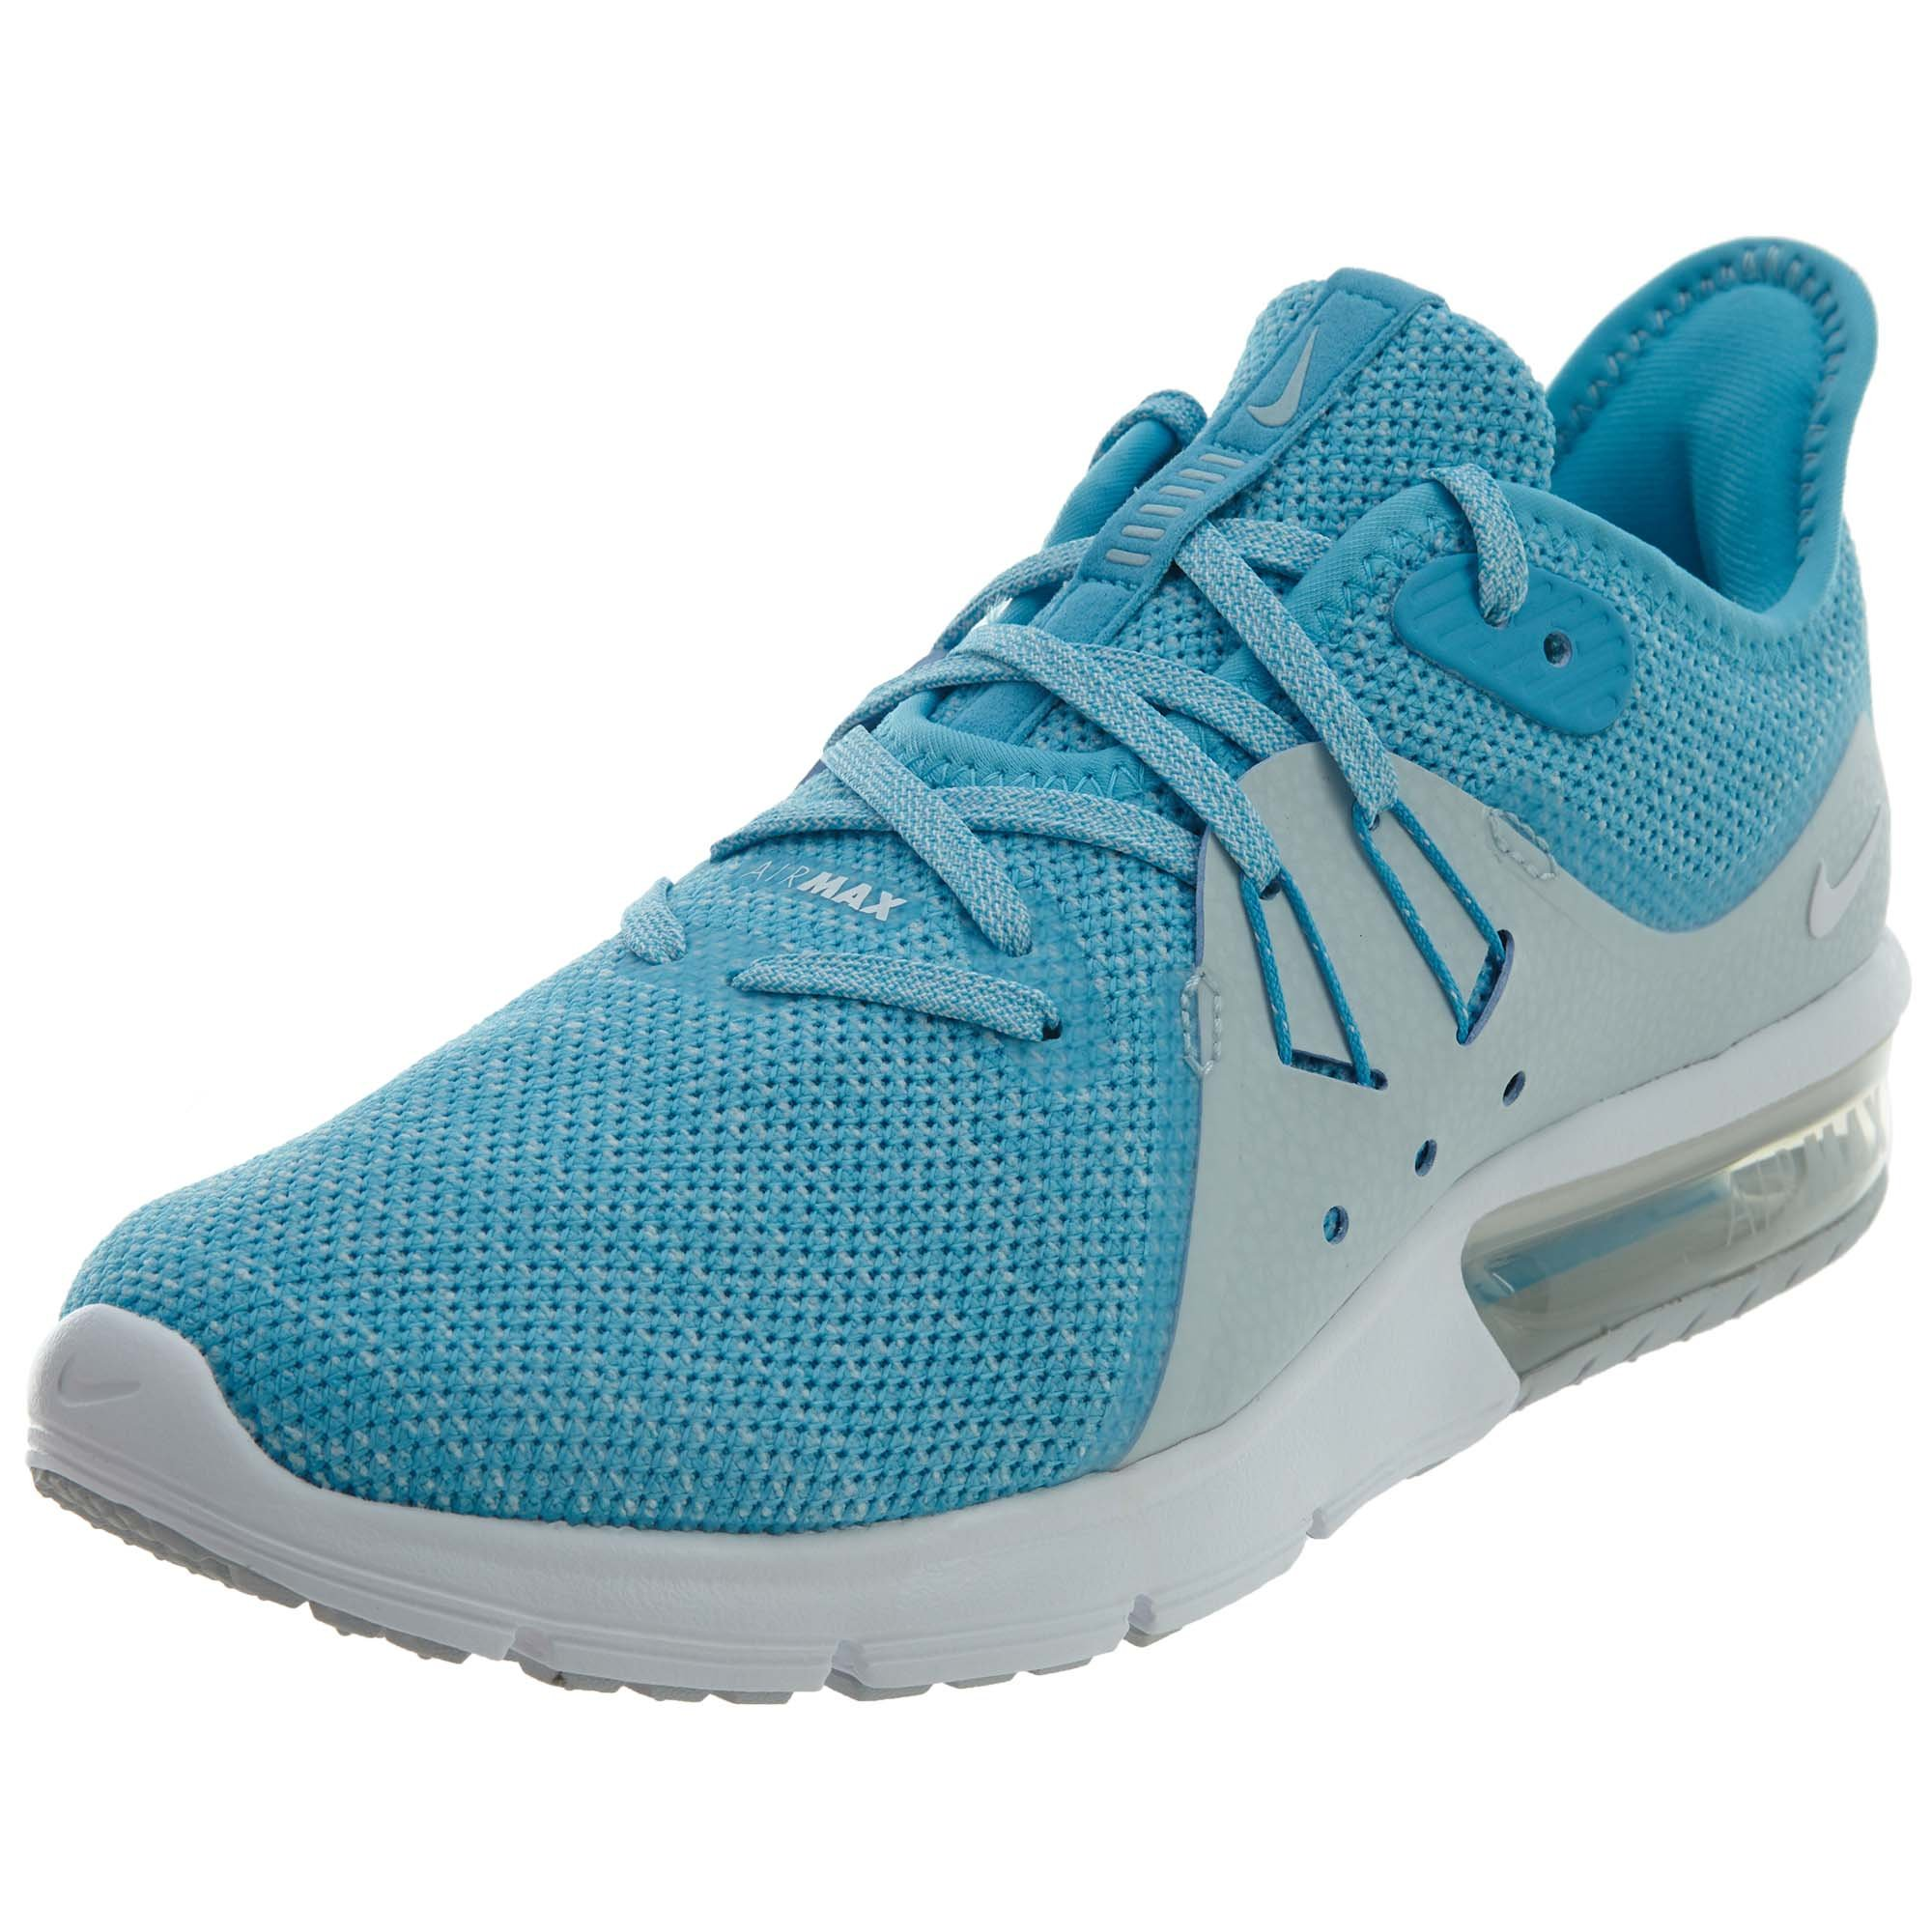 NIKE Air Max Sequent 3 Womens Style : 908993-404 Size : 8 B(M) US